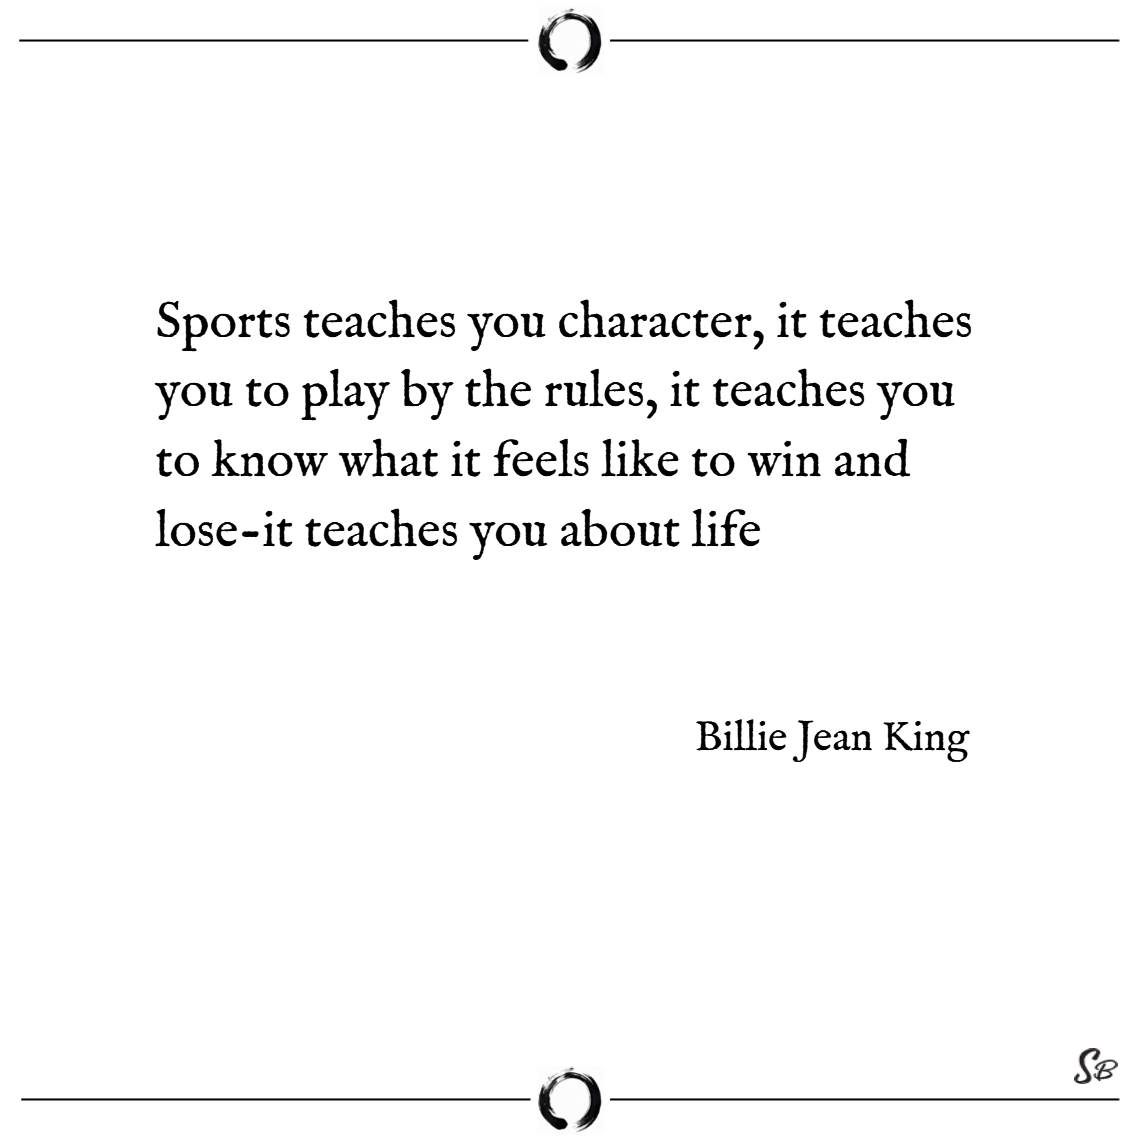 Sports teaches you character, it teaches you to pl